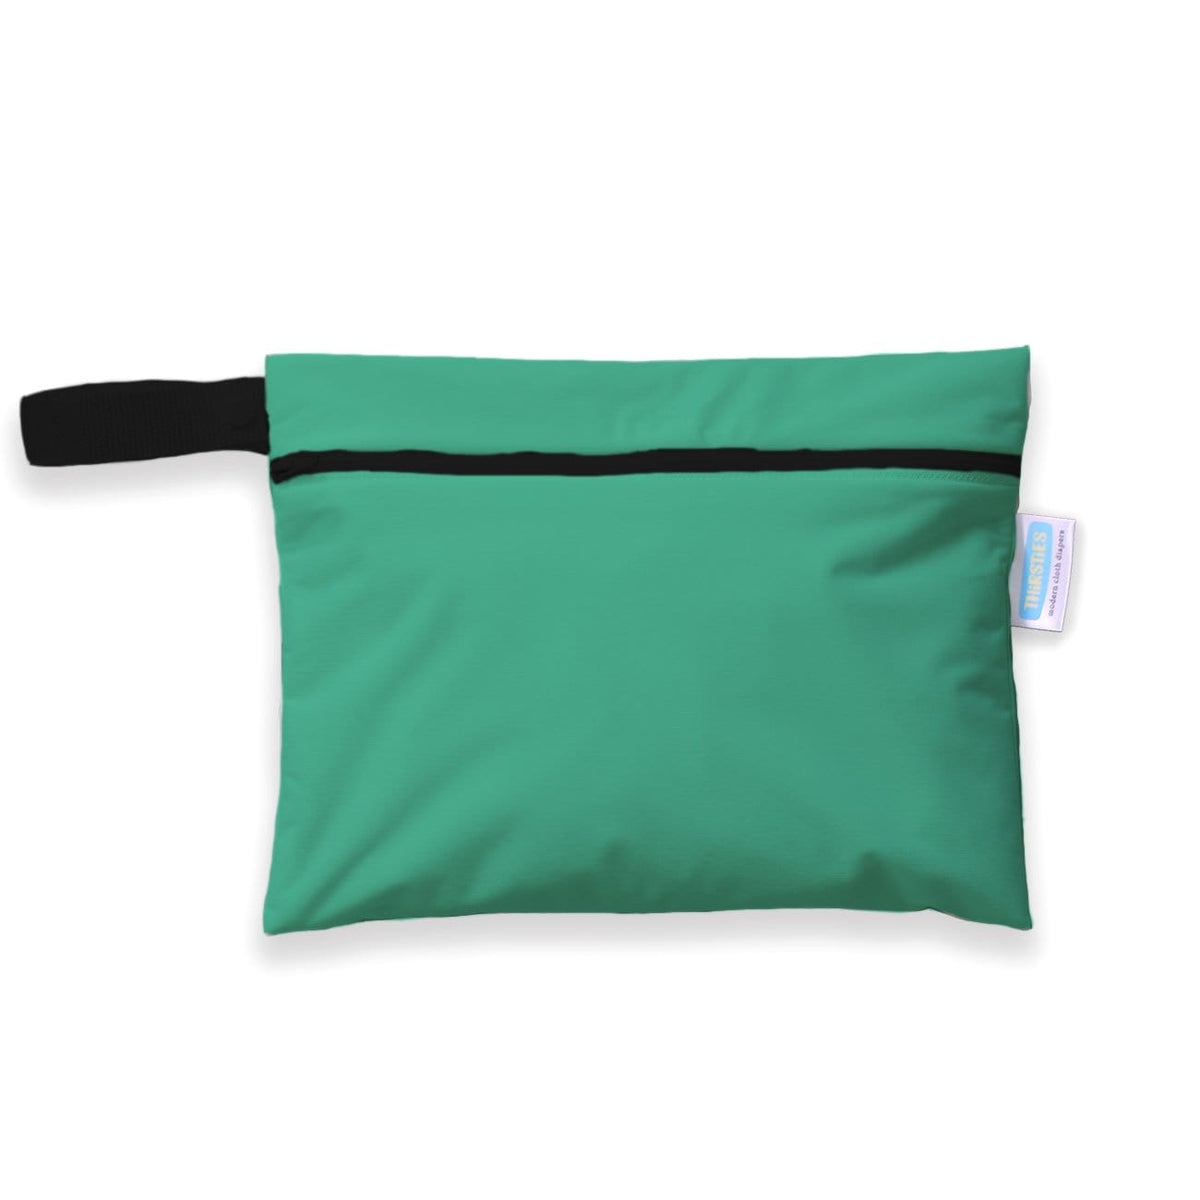 Thirsties Mini Wet Bag - Seafoam